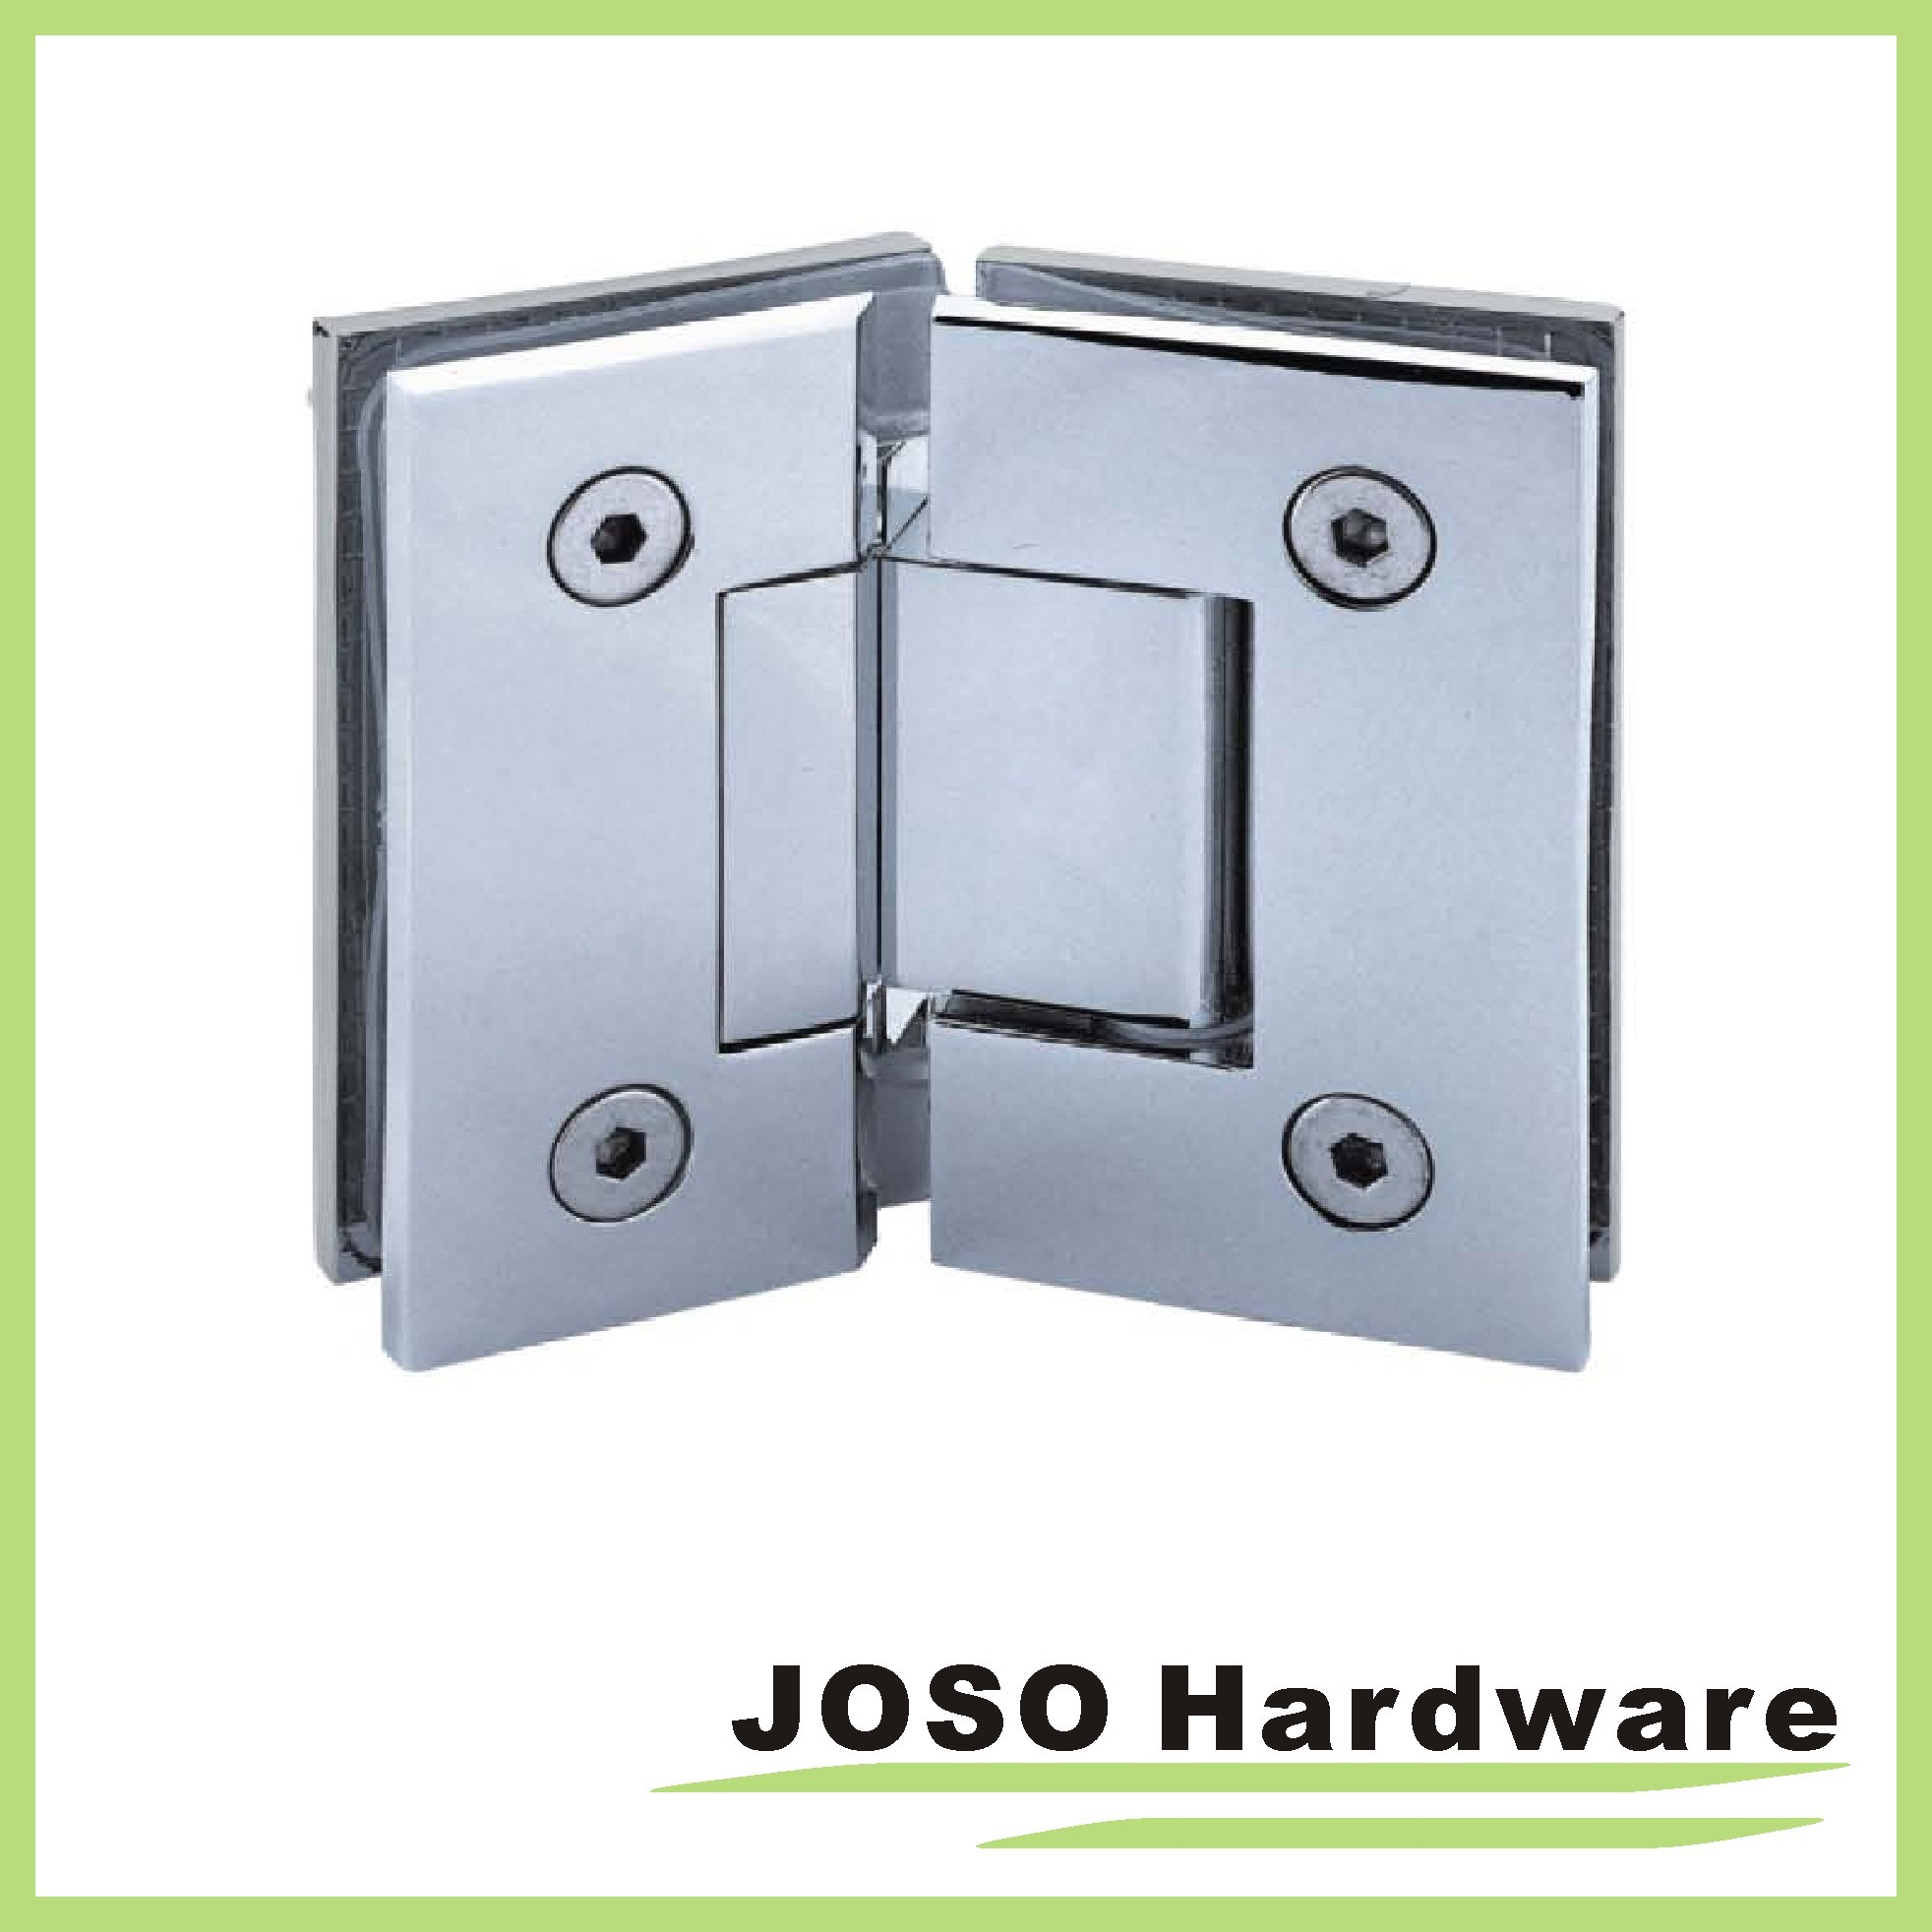 90 Degree Glass to Wall Brass Wall Mount Shower Hinge